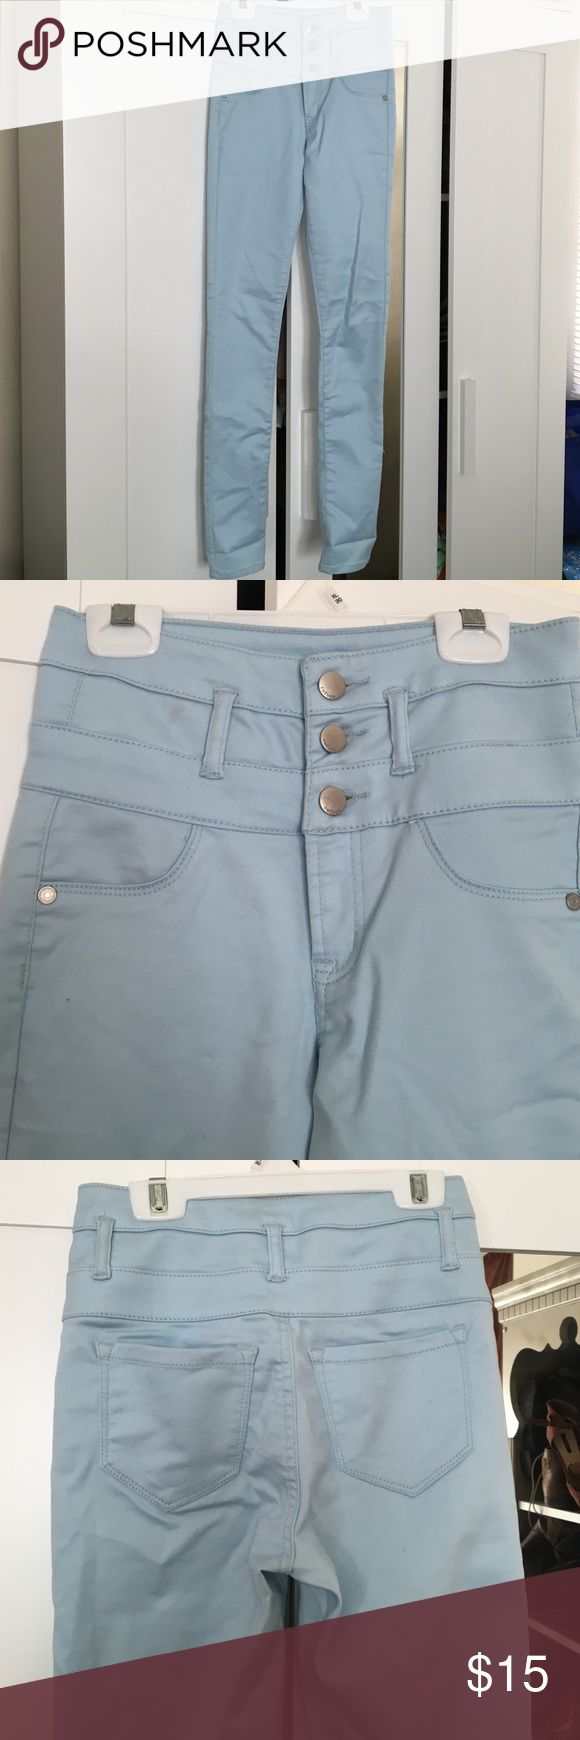 Light blue high wasted pants Fun light blue high wasted skinny pants from Charlotte Russe! 60% cotton 38% polyester 2% spandex! Worn once for 2 hours, no wear or tears! Slimming look! Charlotte Russe Pants Skinny